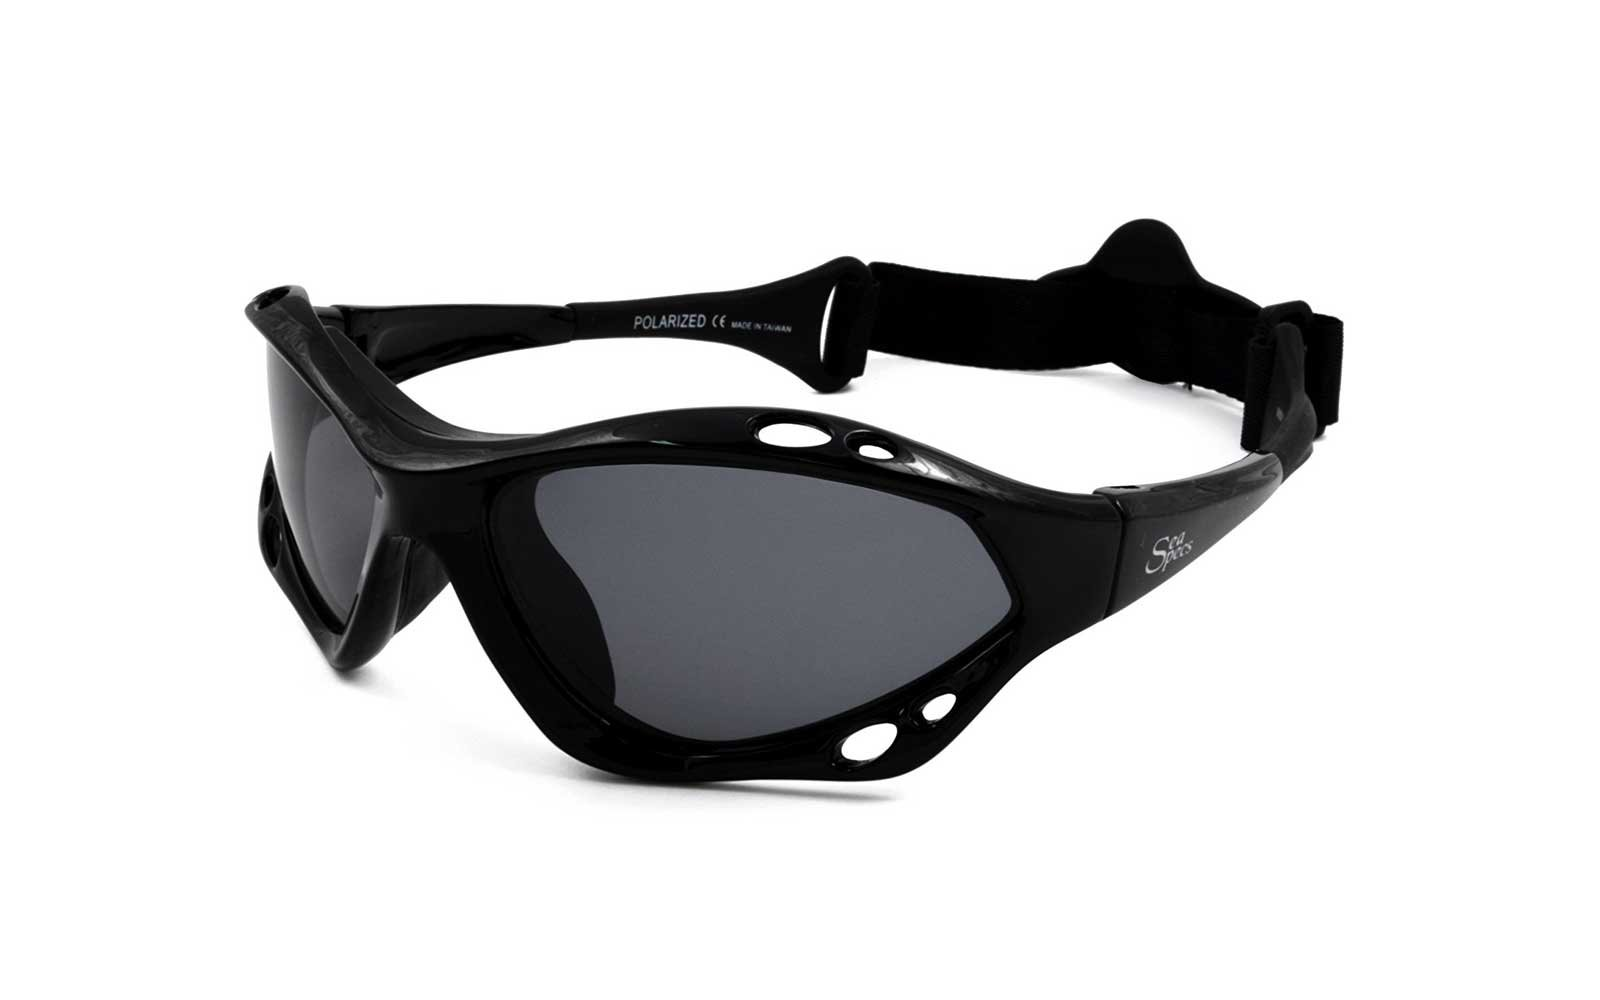 SeaSpecs 'Black Jet' Sunglasses